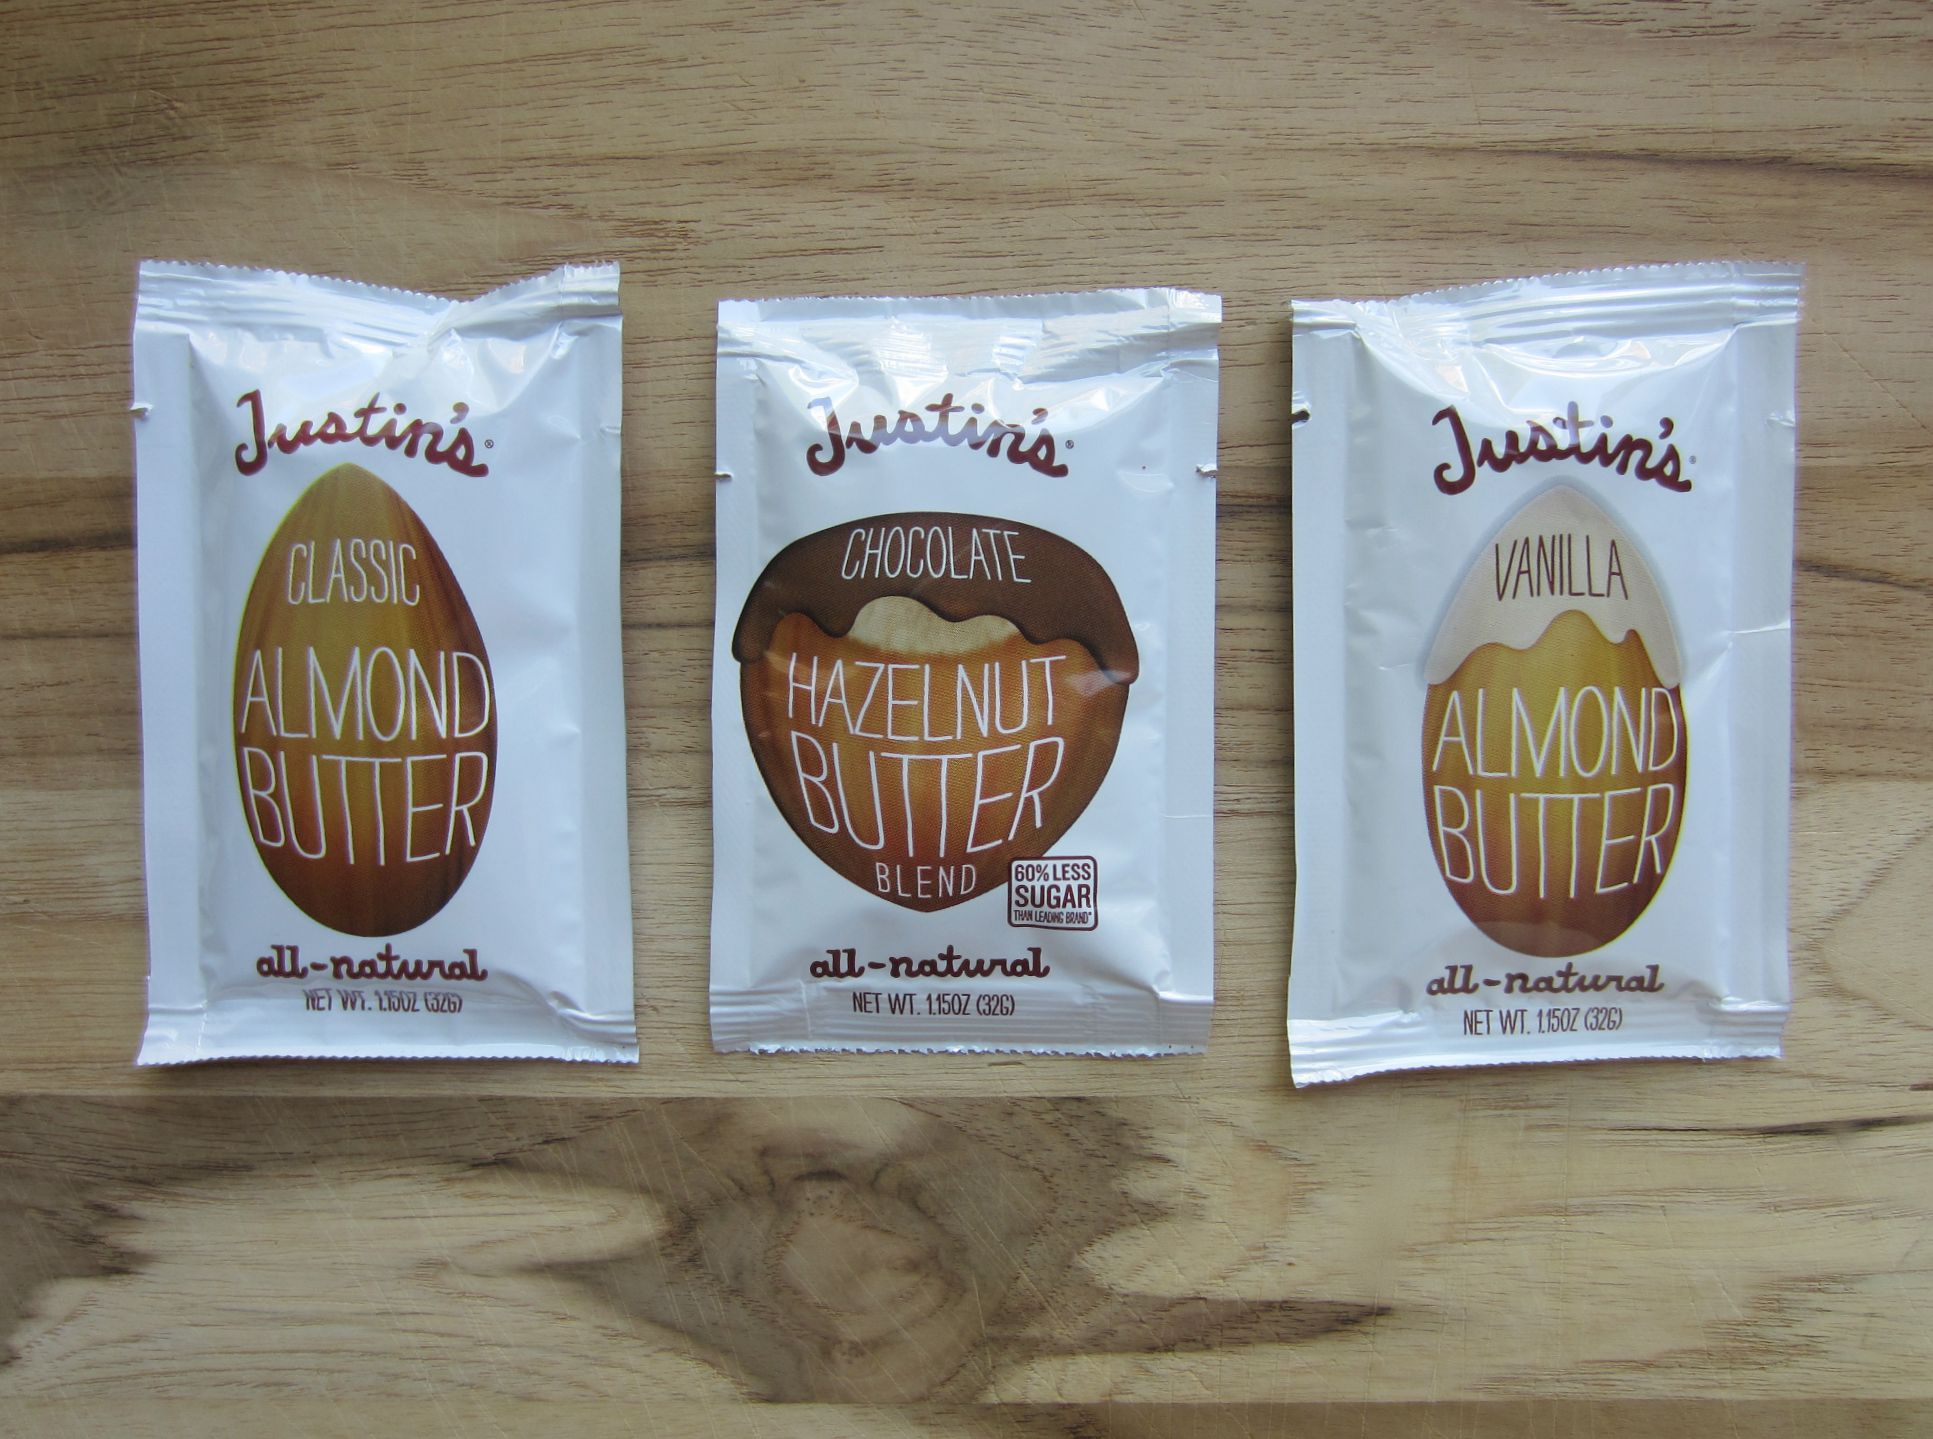 justins all natural almond butter